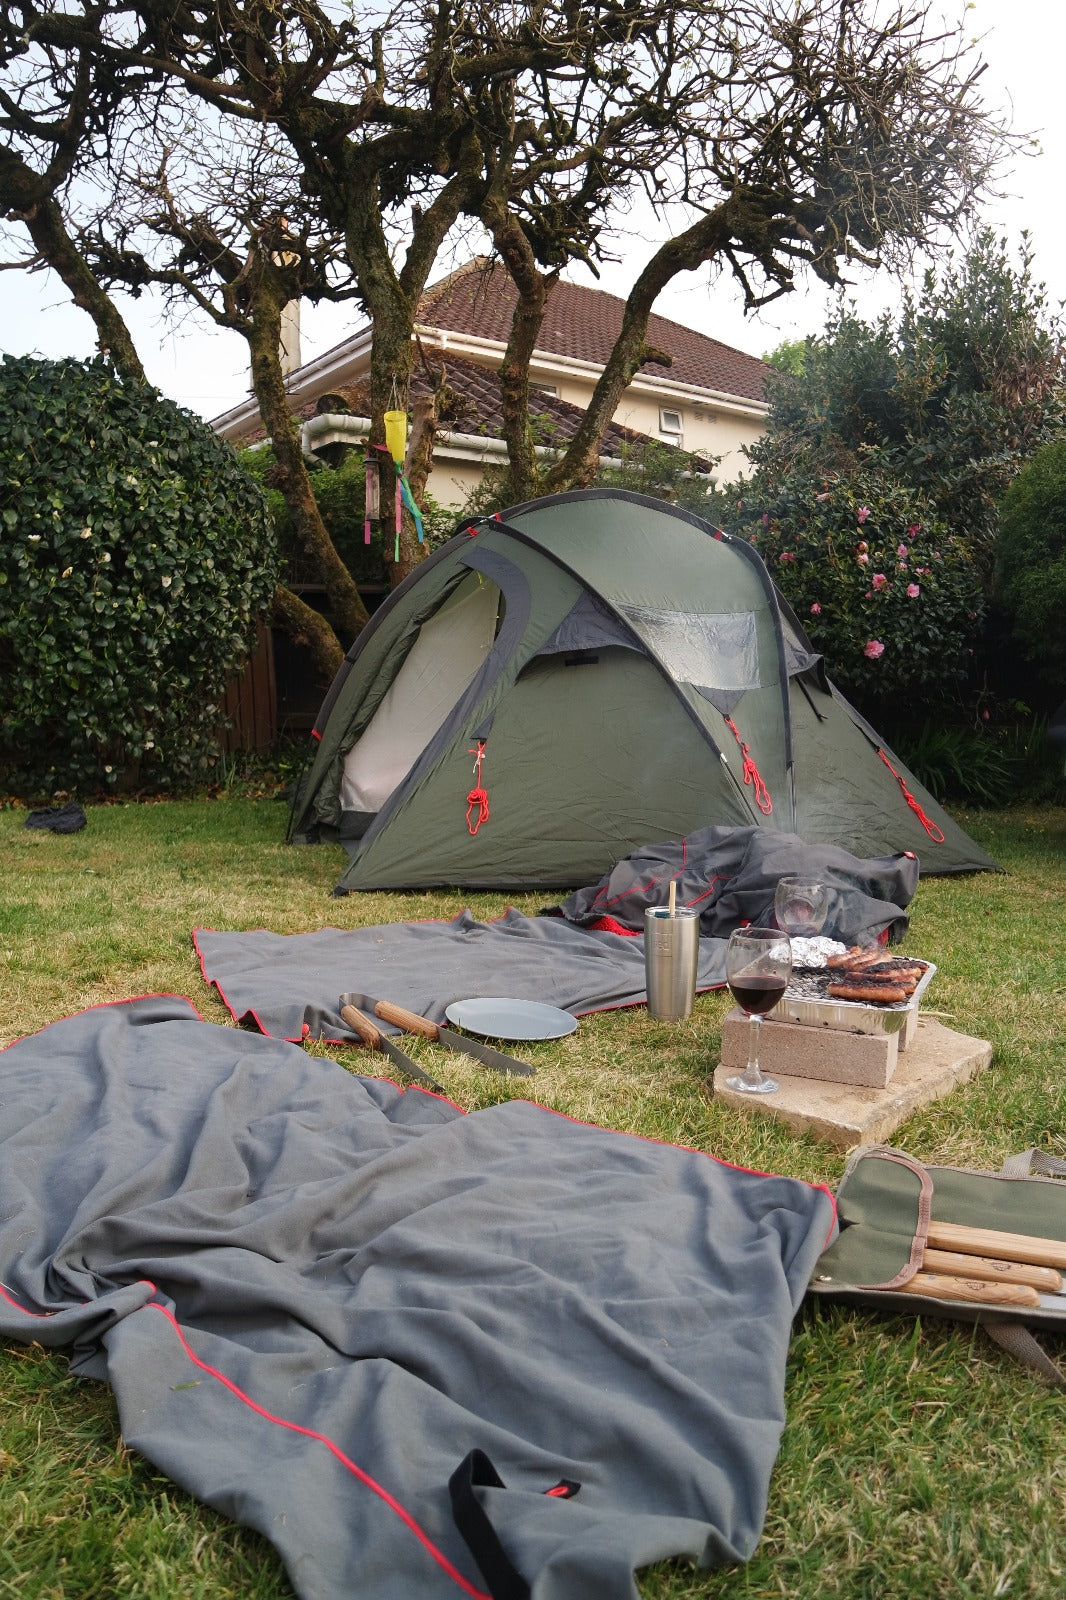 Camp site in the garden